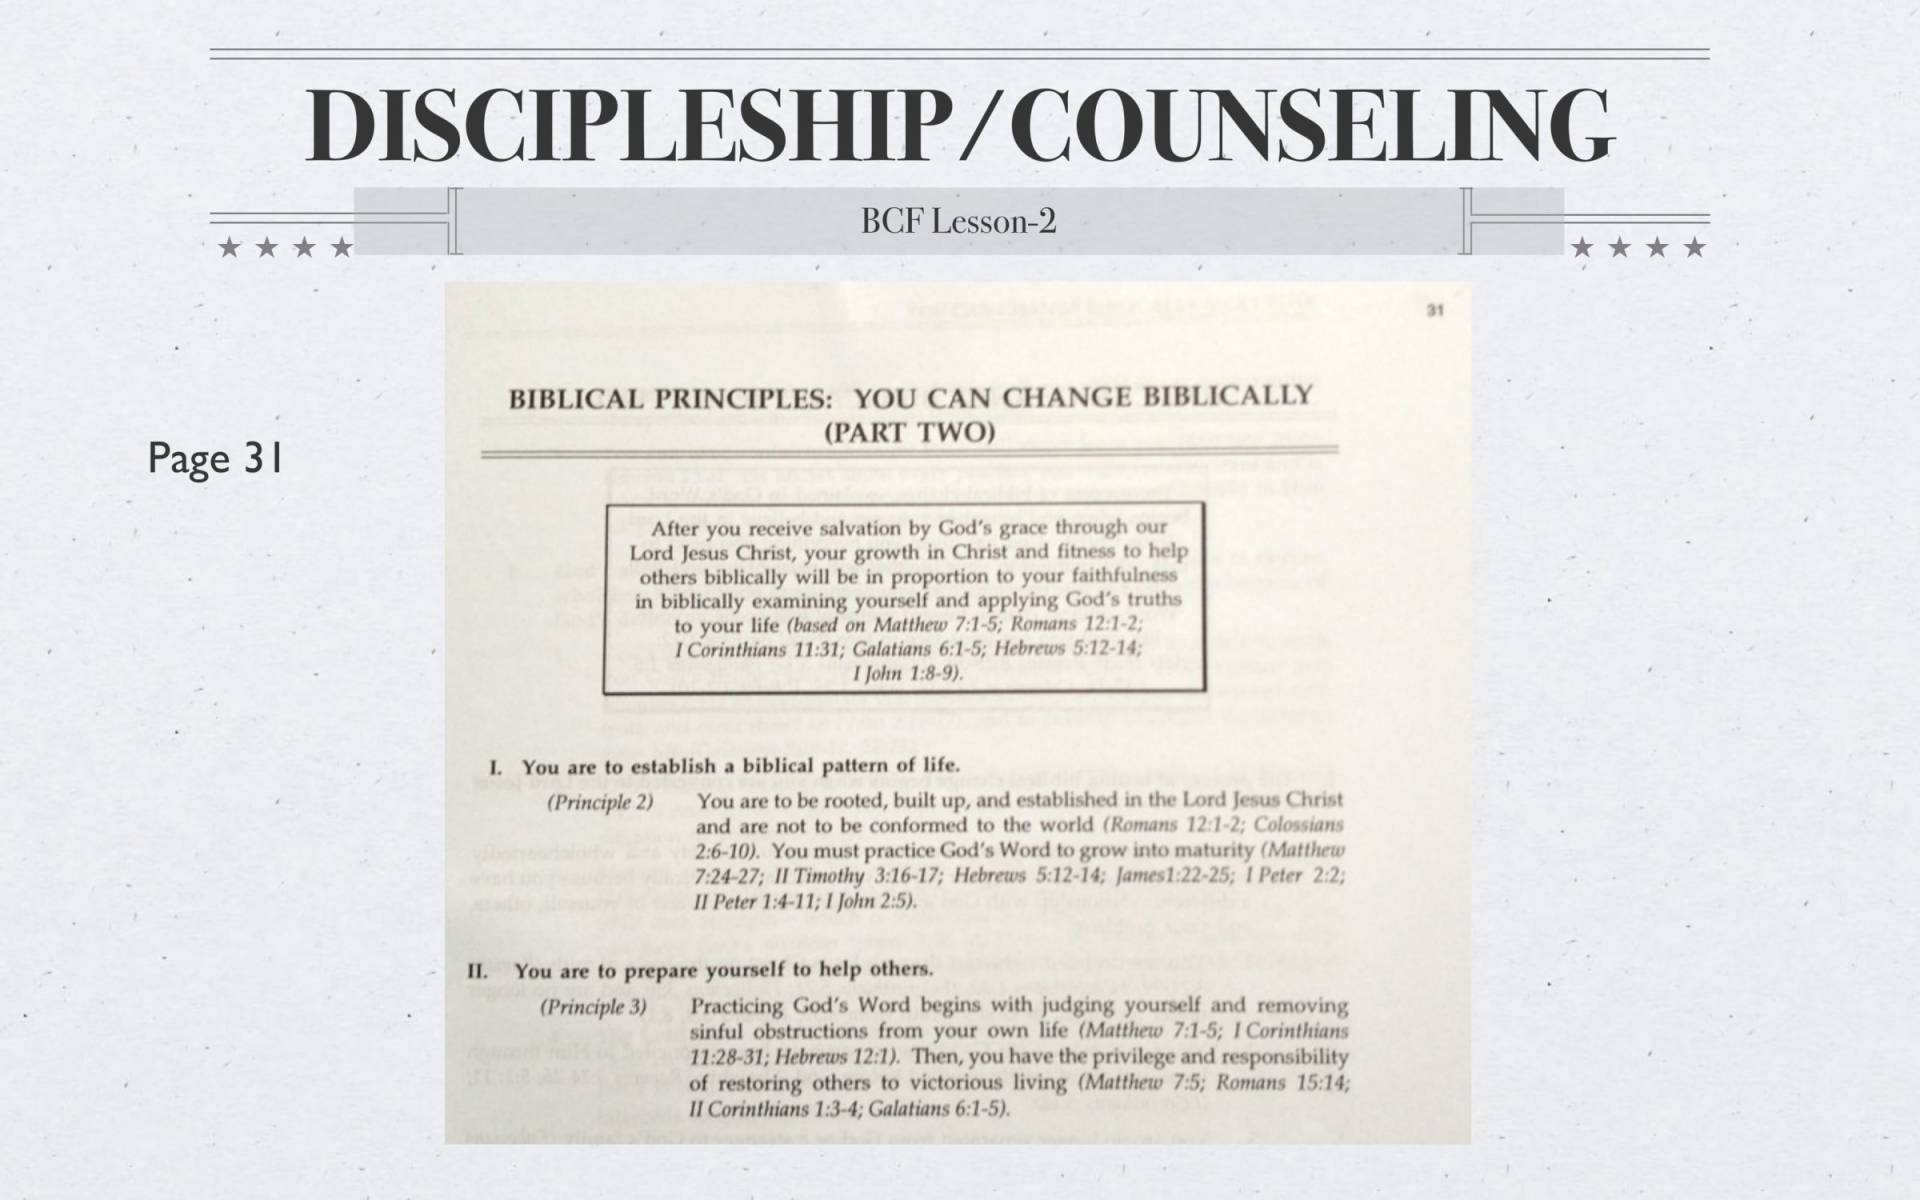 BC&D-04 - How To Focus Your Bible Study Time For Discipleship & Counseling-07